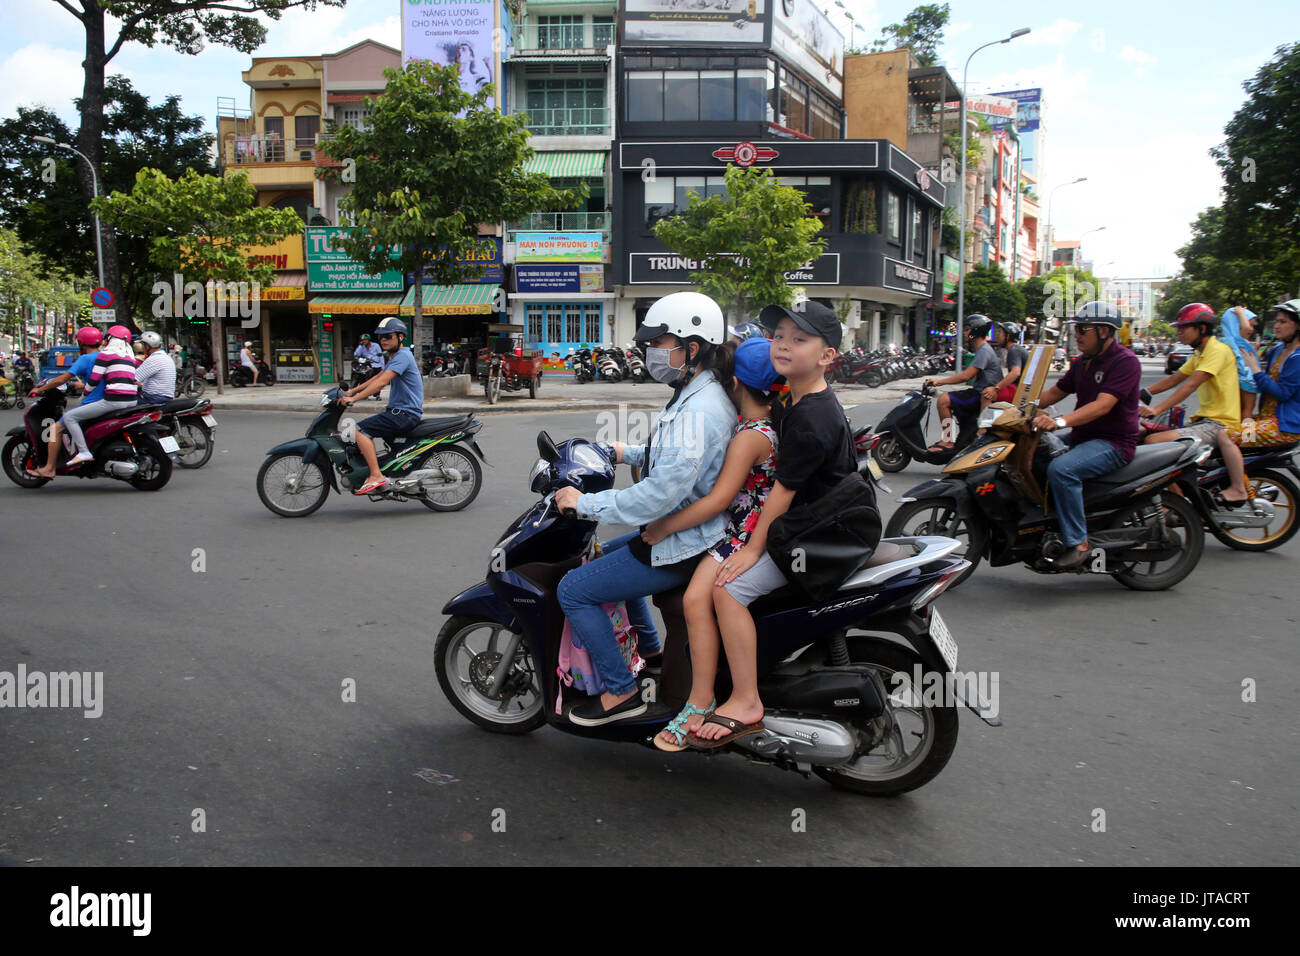 Mother and children on motor scooter on Saigon Street, Ho Chi Minh City, Vietnam, Indochina, Southeast Asia, Asia - Stock Image